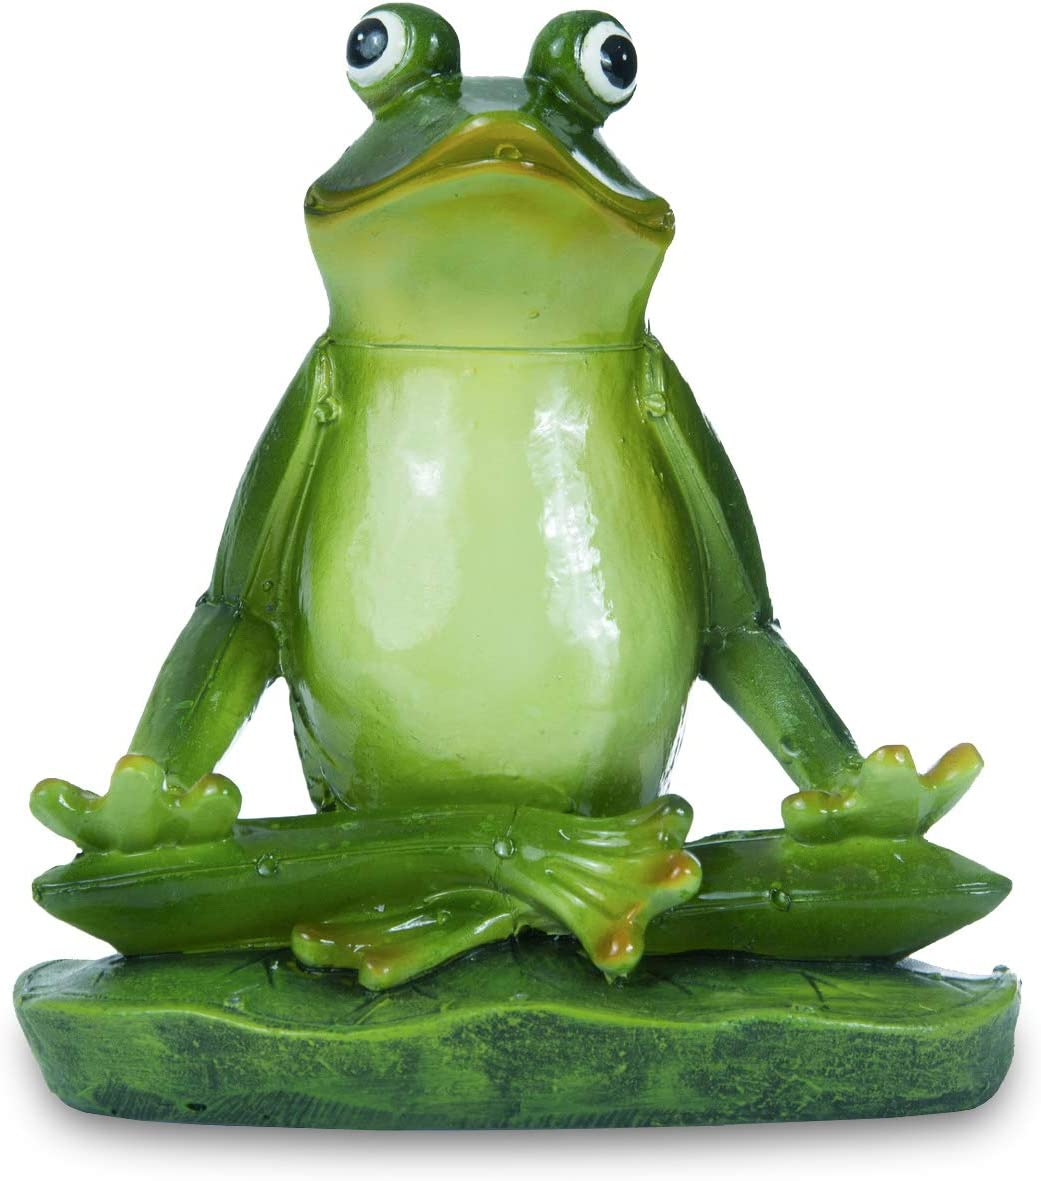 Jy.Cozy Meditating Zen Yoga Frog Garden Decorations Statues Indoor Outdoor Resin Figurine for Yard Home Garden Patio and Office 6.3 Inch Tall